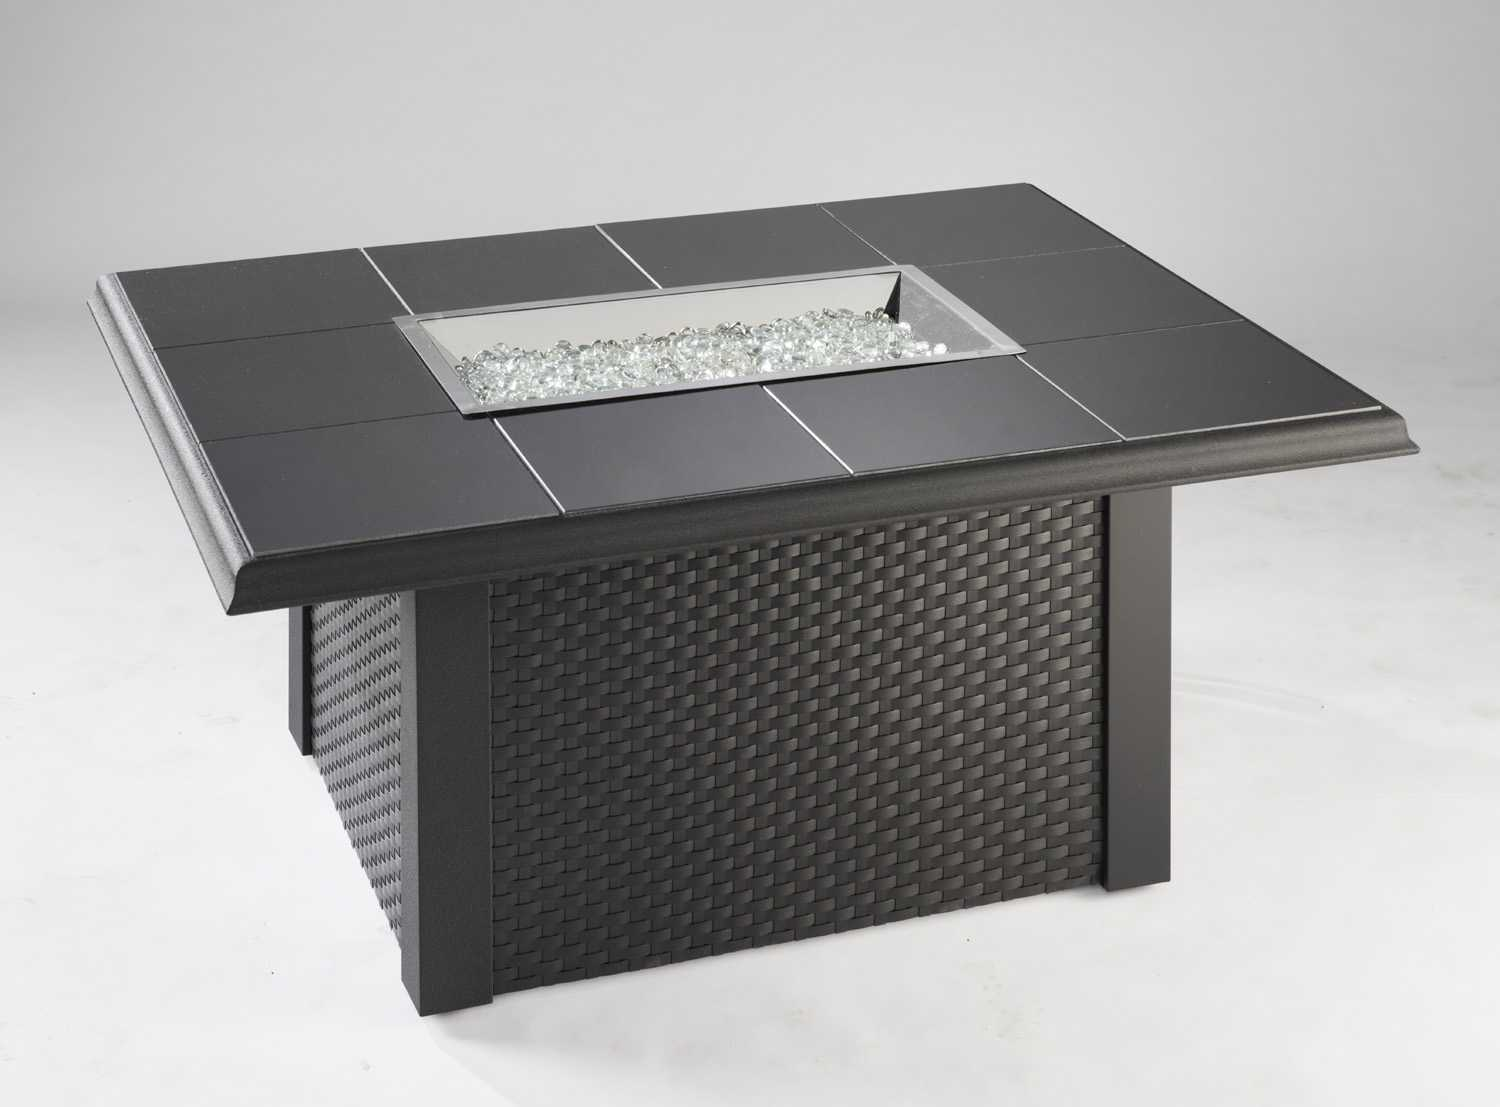 Outdoor Greatroom Napa Valley 50 X 38 Rectangular Crystal Fire Pit Table With Black